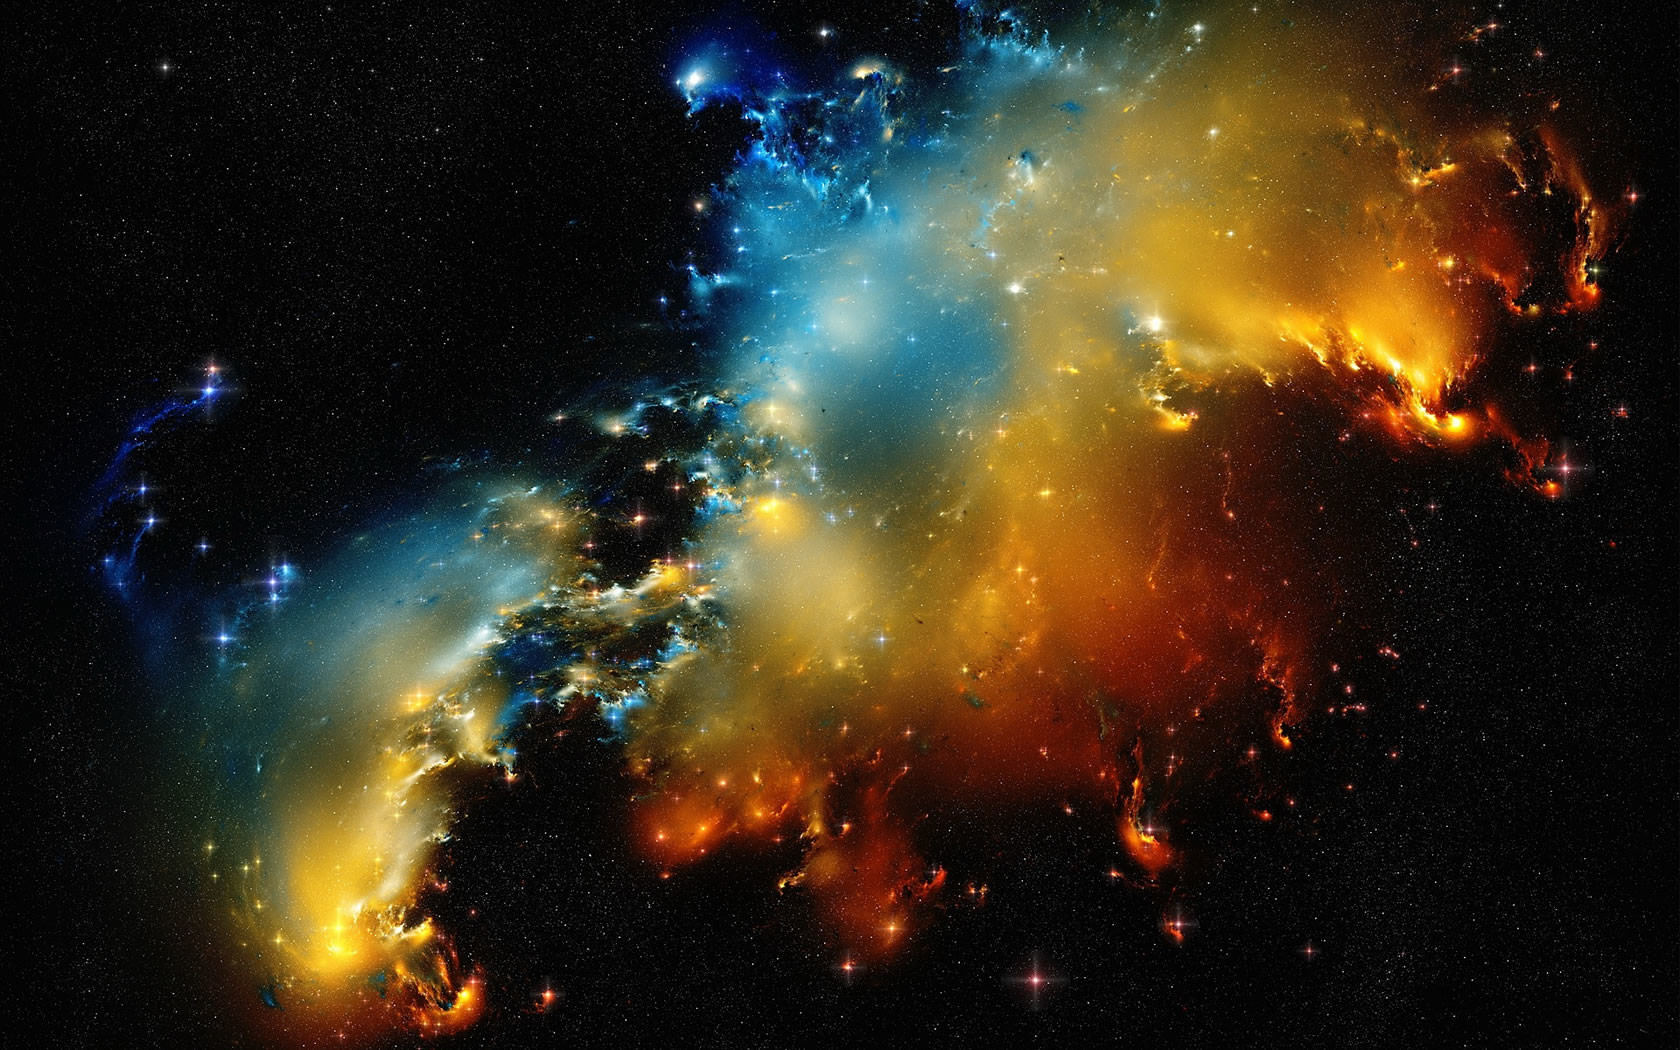 Breathtaking Nasa Hubble Space Hd Wallpapers: Amazing Nebula Wallpaper 1680x1050